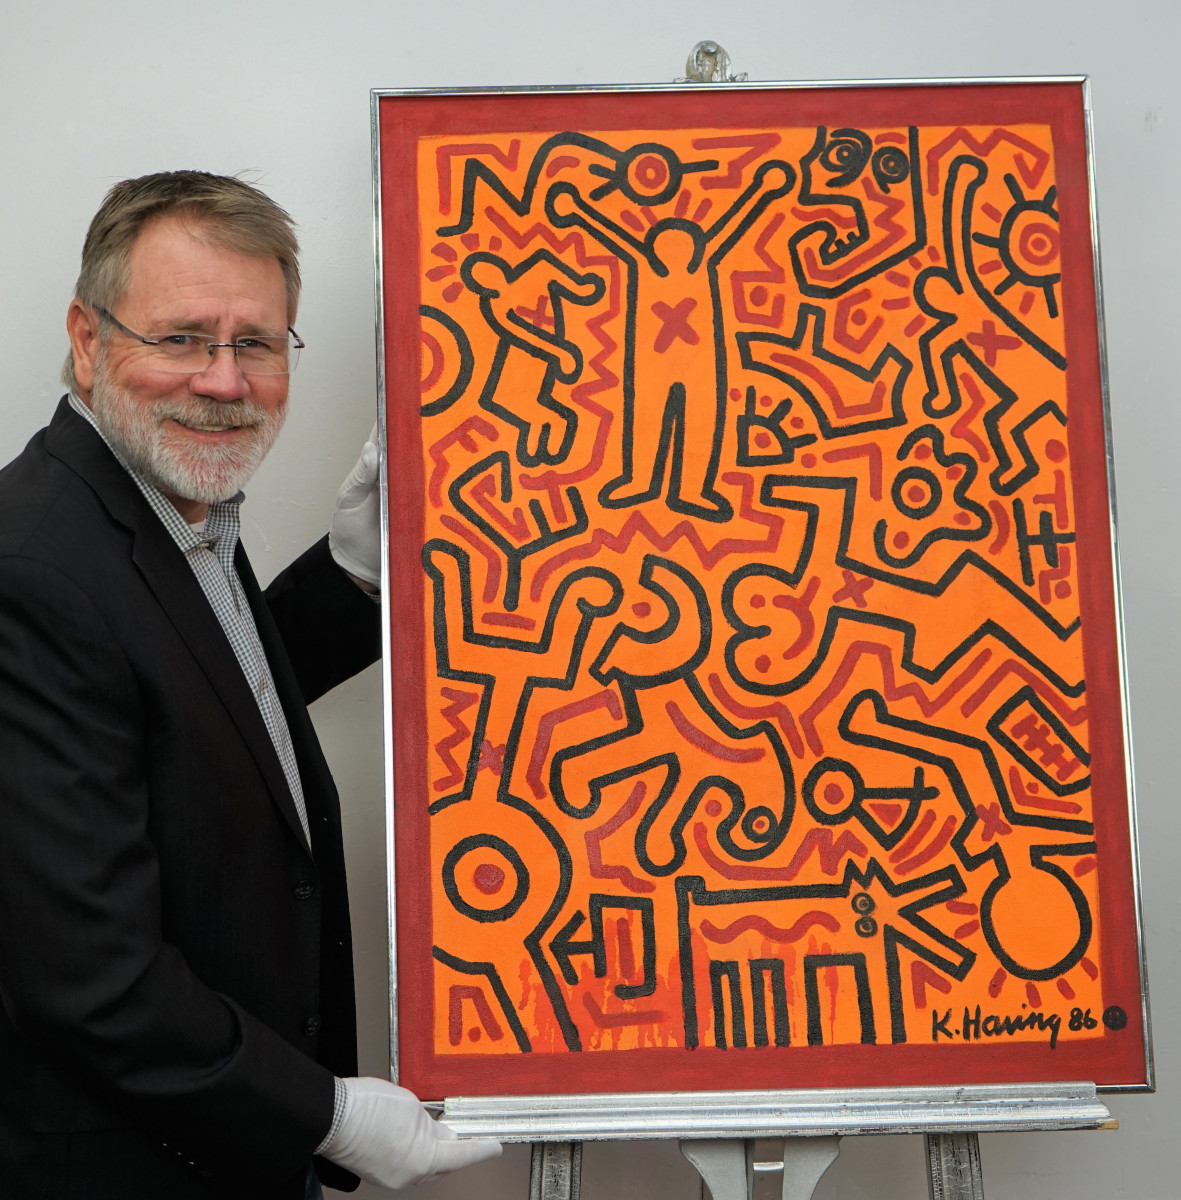 Erik Hoyer, CEO of EJ's Auction & Appraisal, with Keith Haring's recently discovered painting.